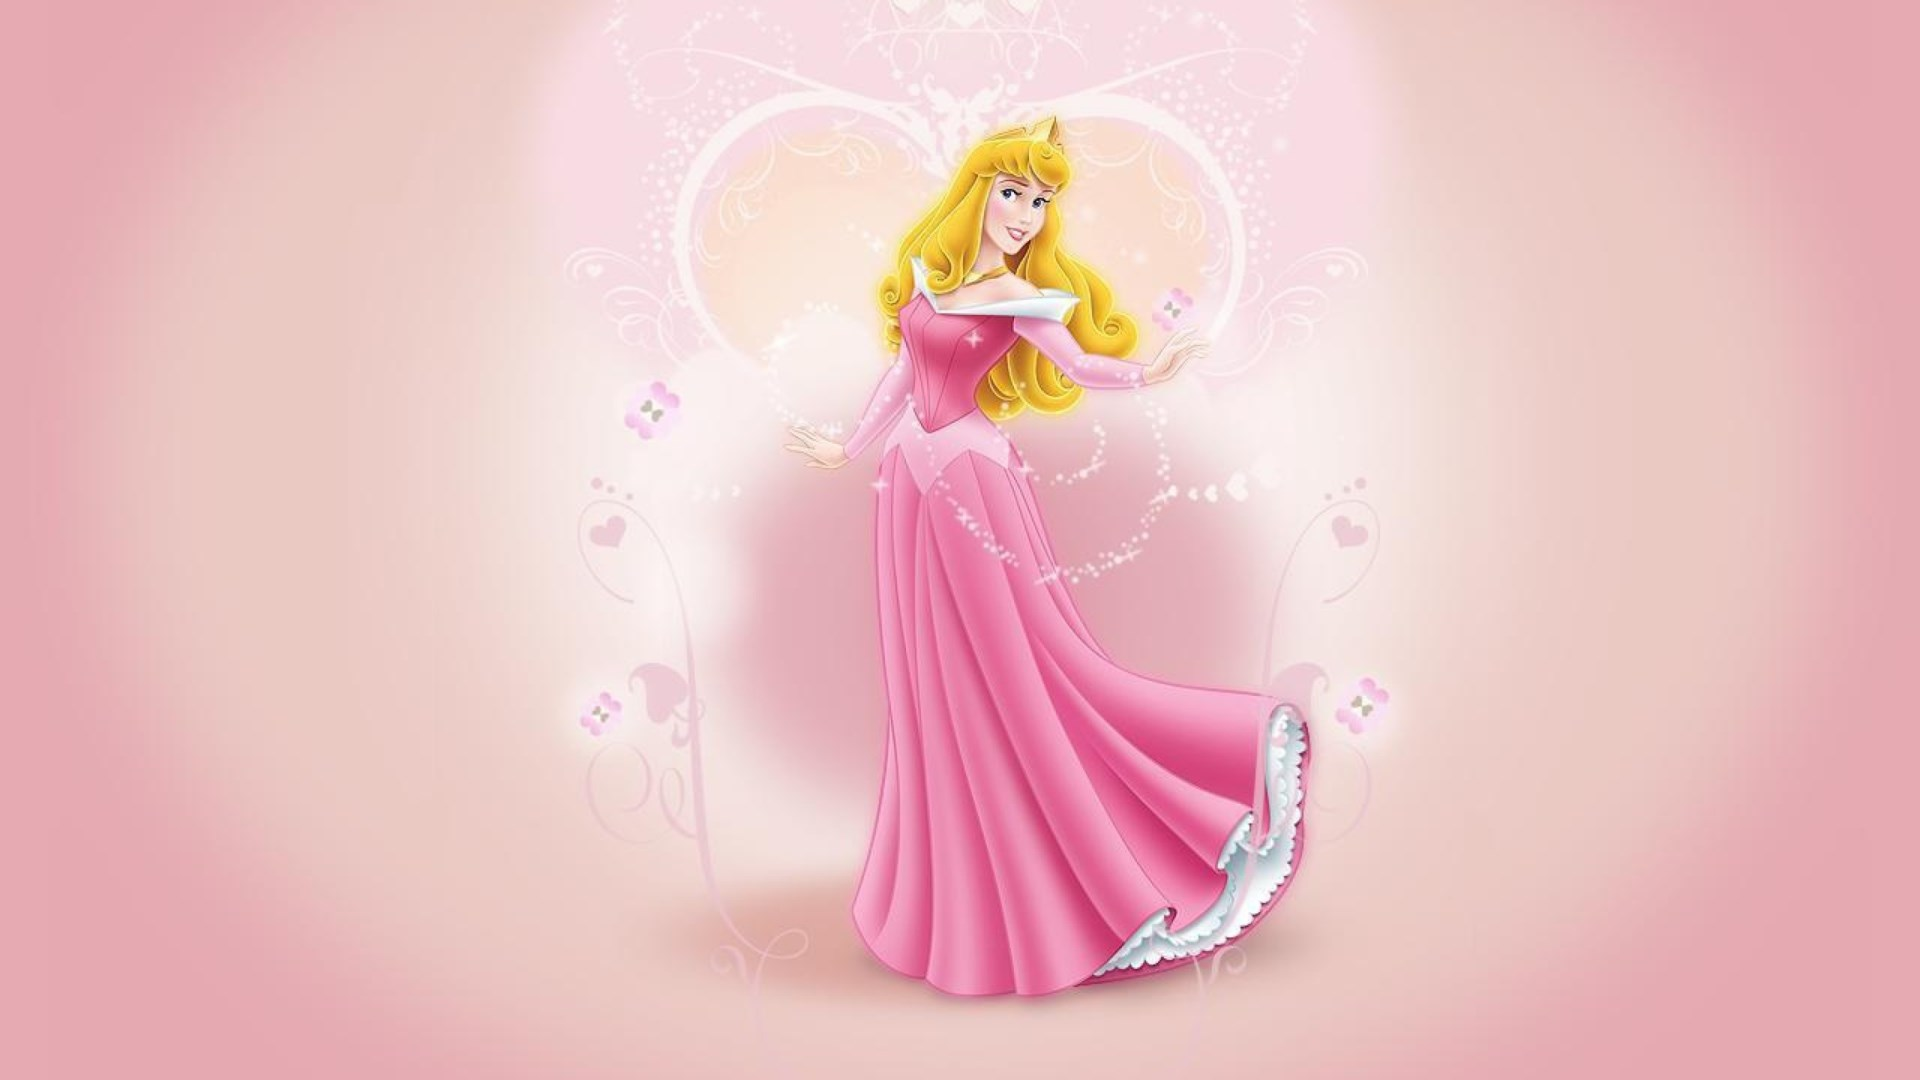 cute-princess-pictures-free-1920-x-1080-kB-wallpaper-wpc5803850